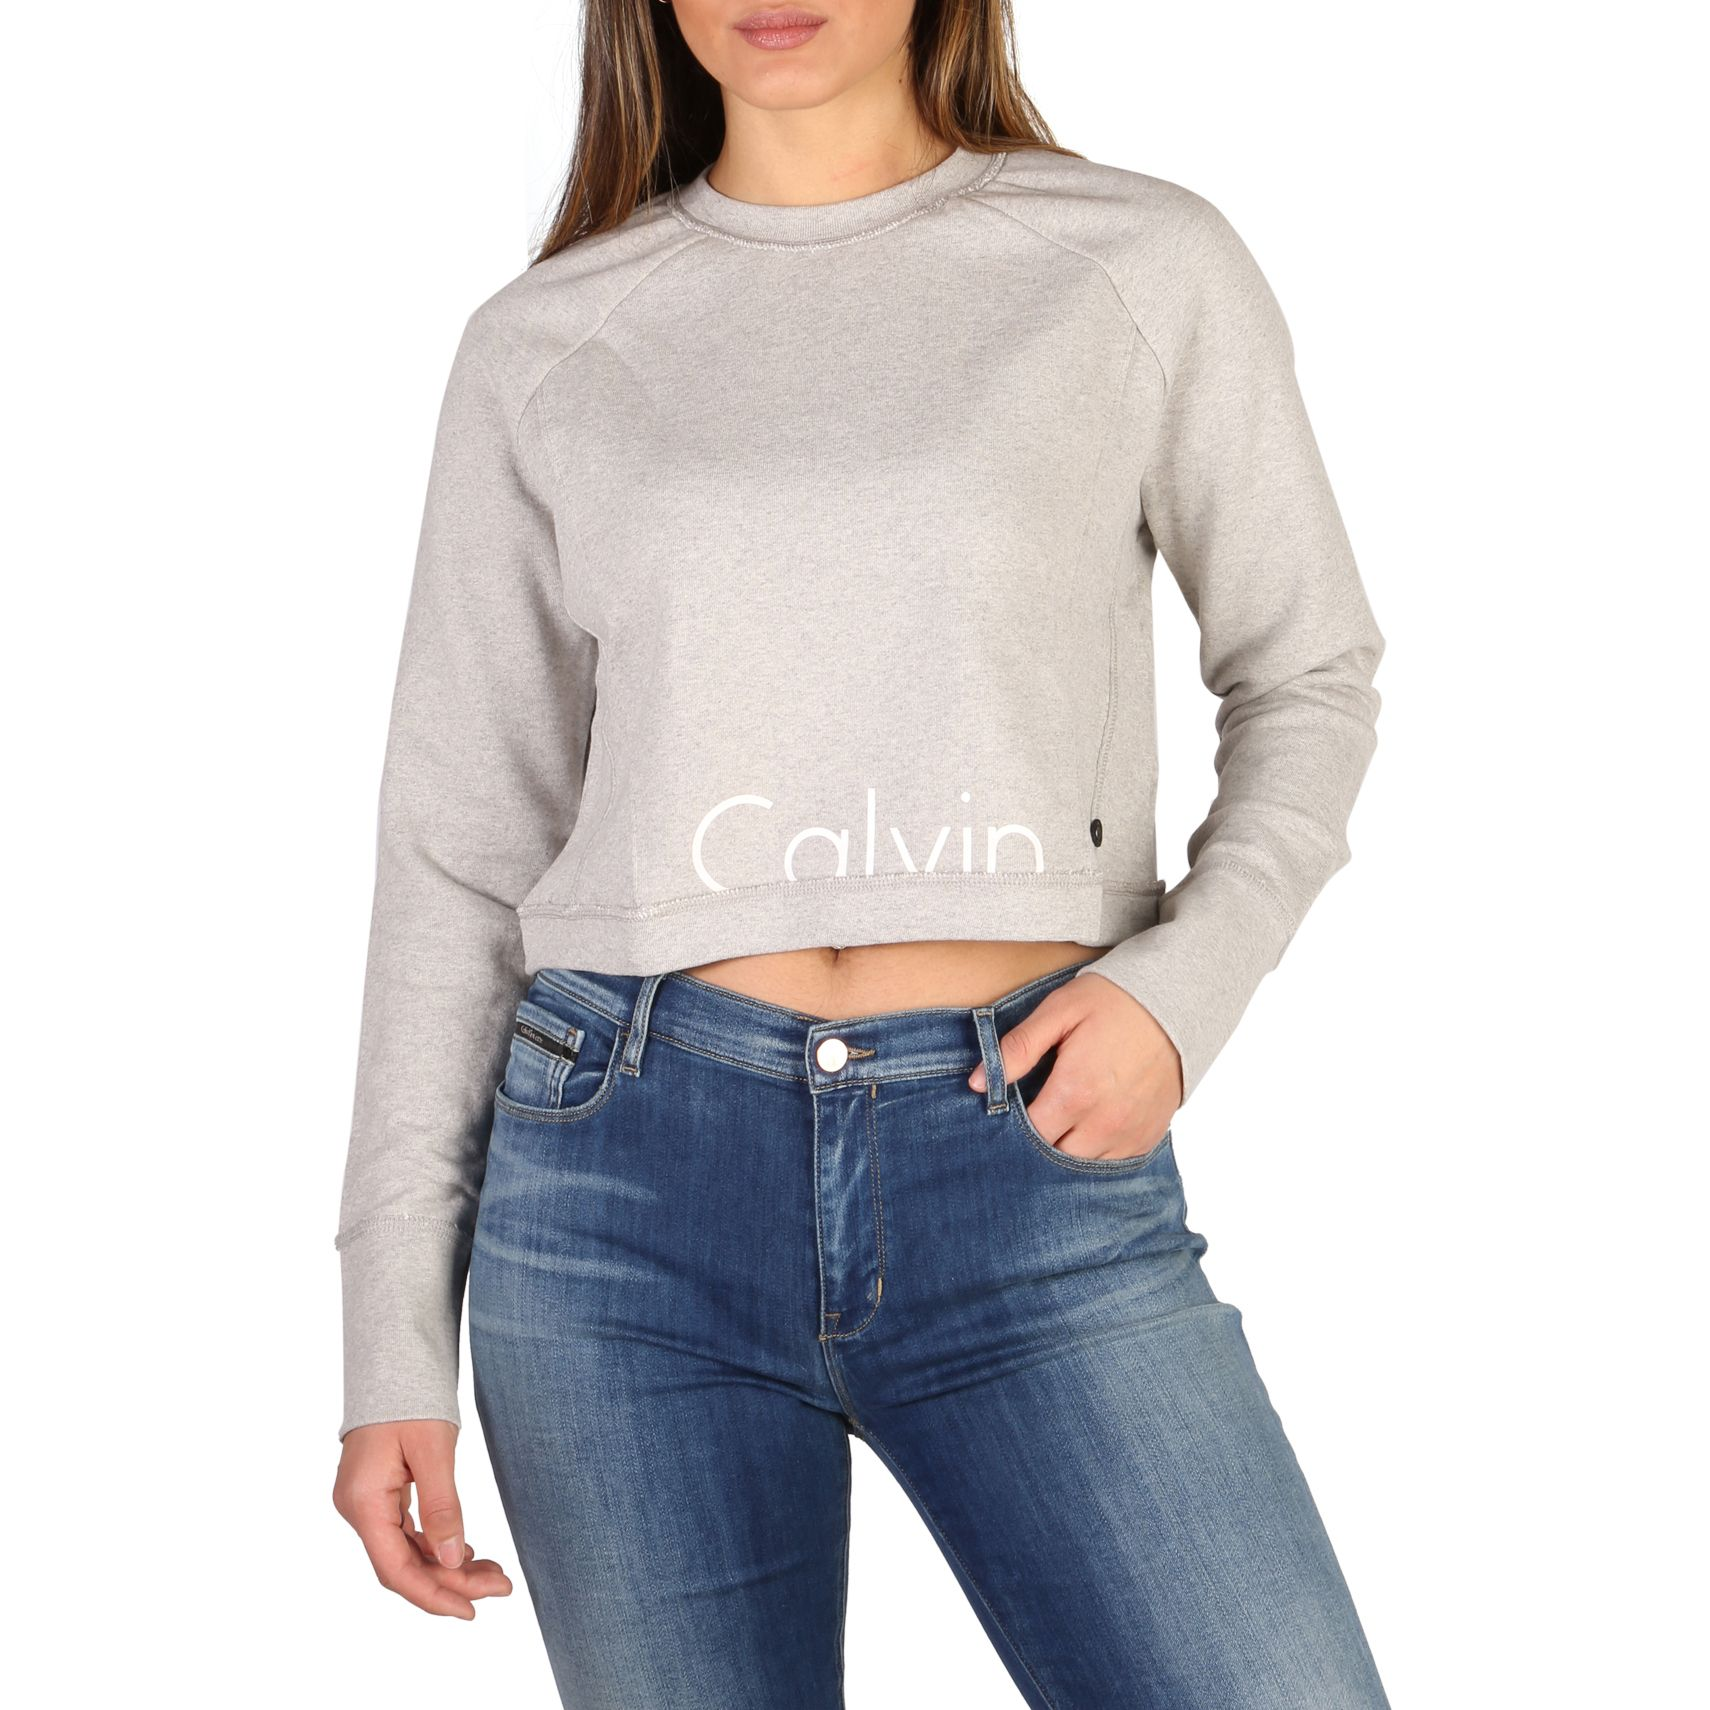 Calvin Klein - J20J201305 | You Fashion Outlet